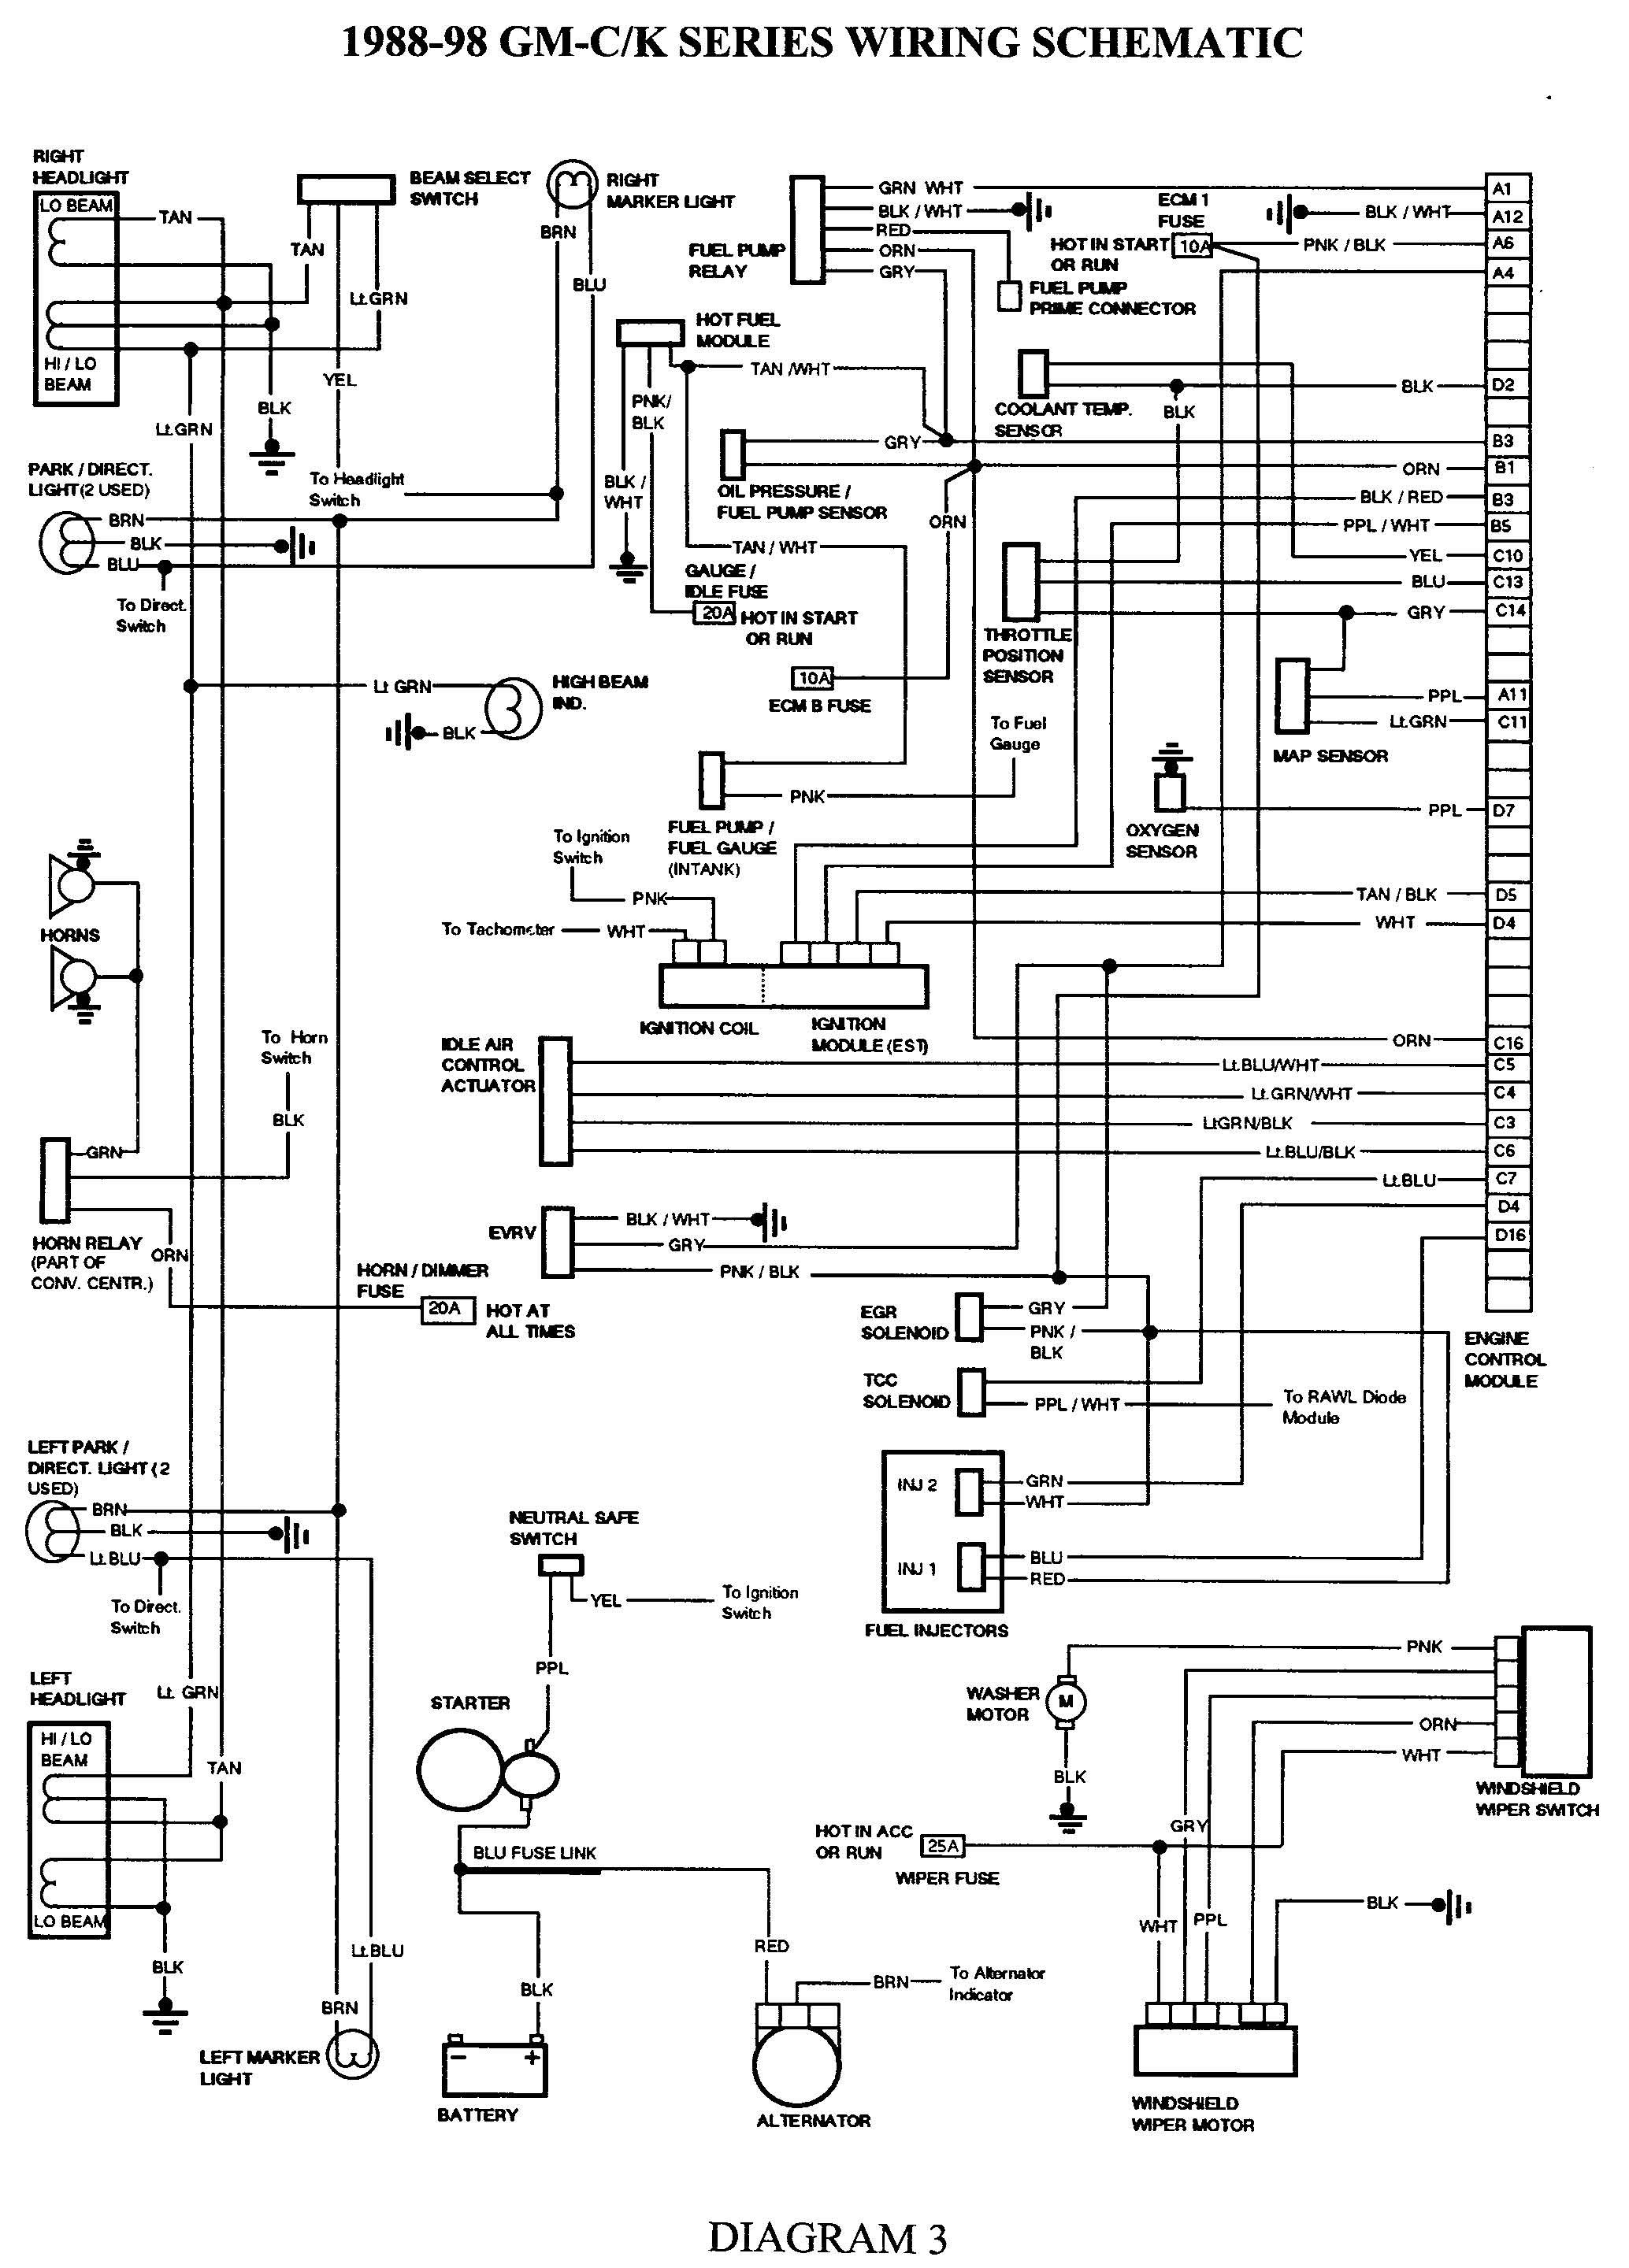 gmc truck wiring diagrams on gm wiring harness diagram 88 98 kc chevrolet truck wiring diagrams gmc truck wiring diagrams on gm wiring harness diagram 88 98